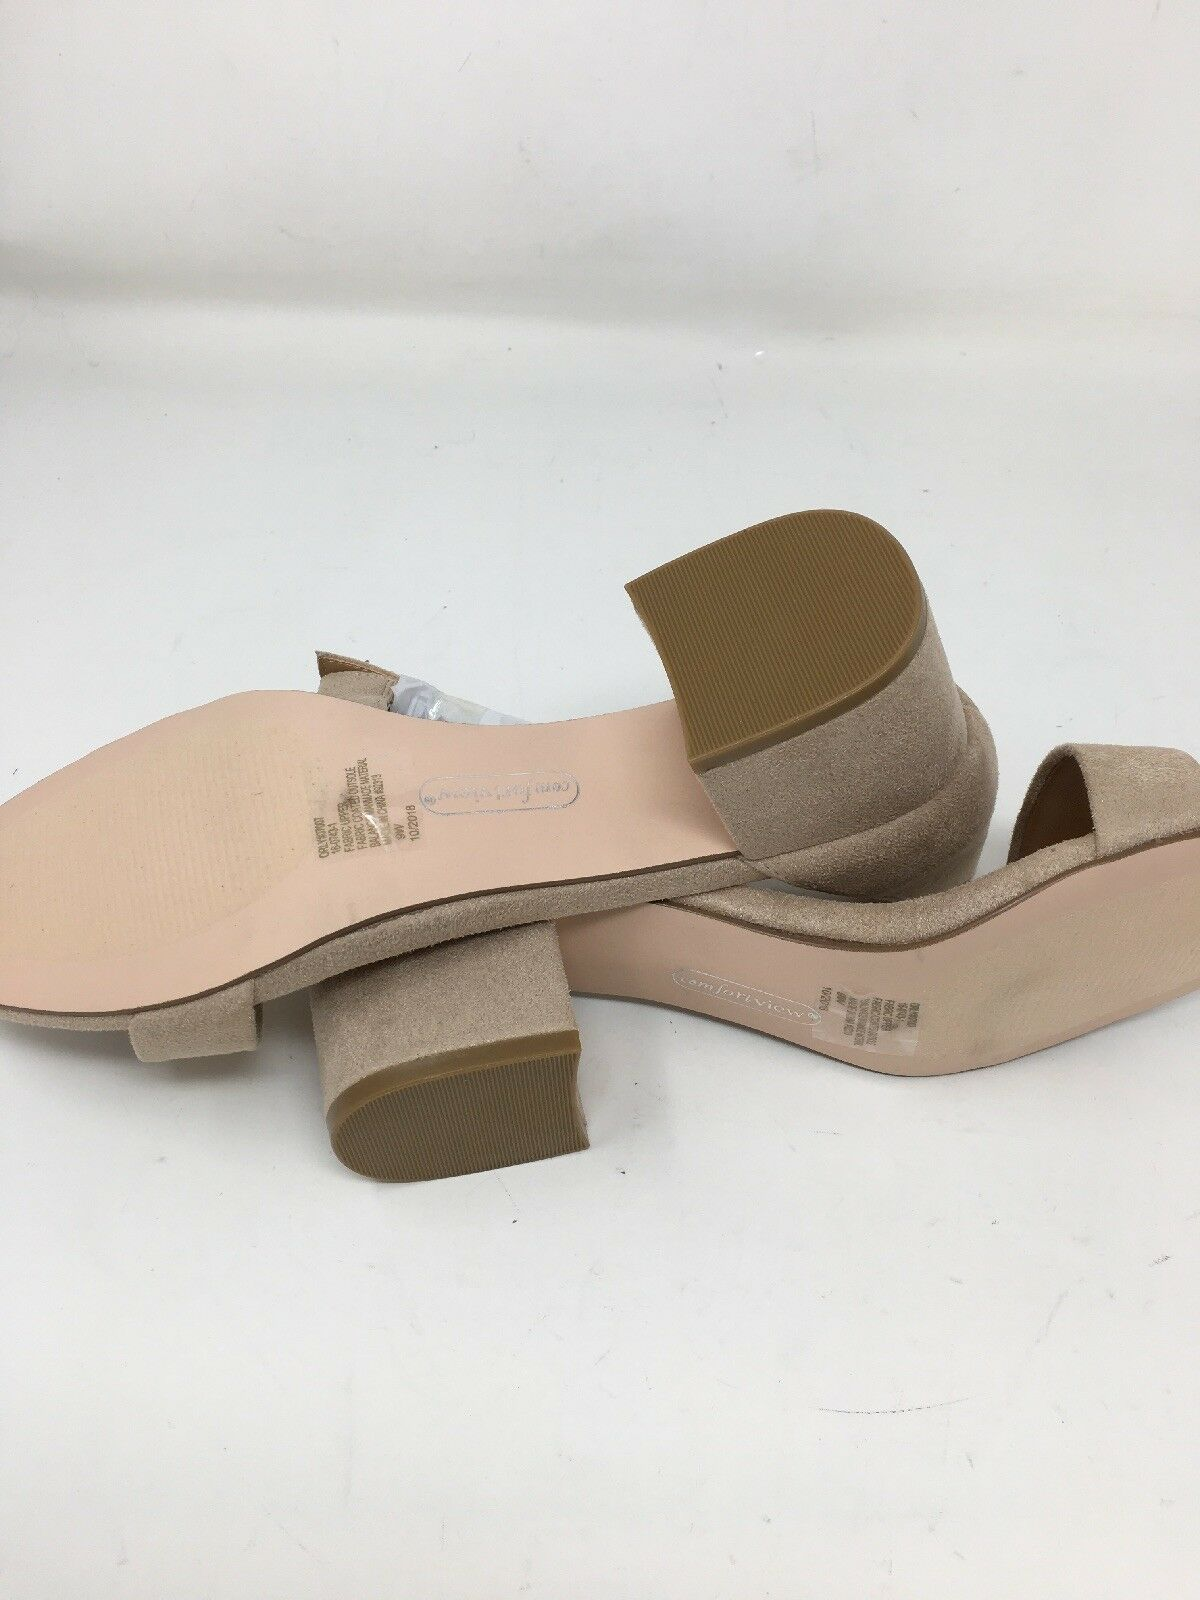 Women's Comfortview Orly Orly Orly Sandals US 9w New Nude NEW 7e59af